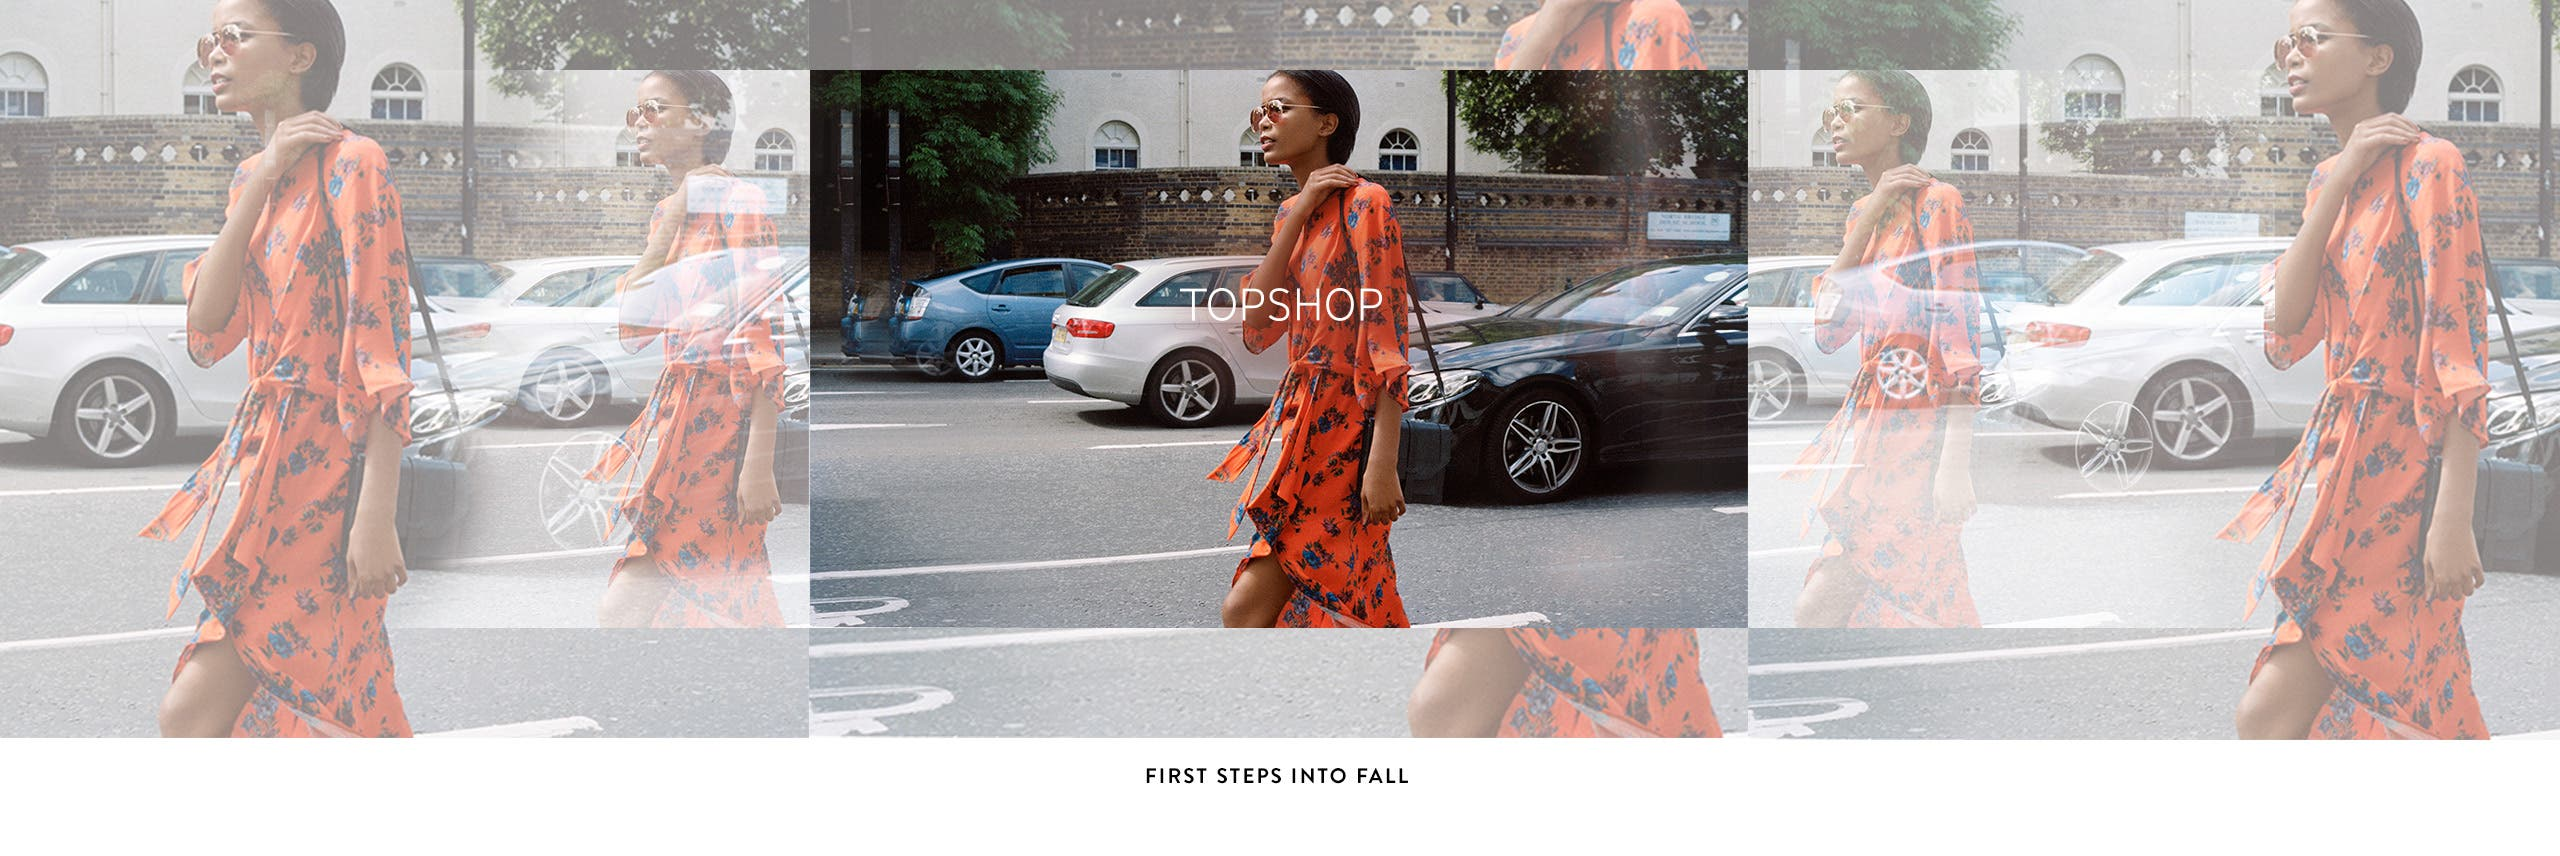 Topshop: first steps into fall clothing and accessories for women.